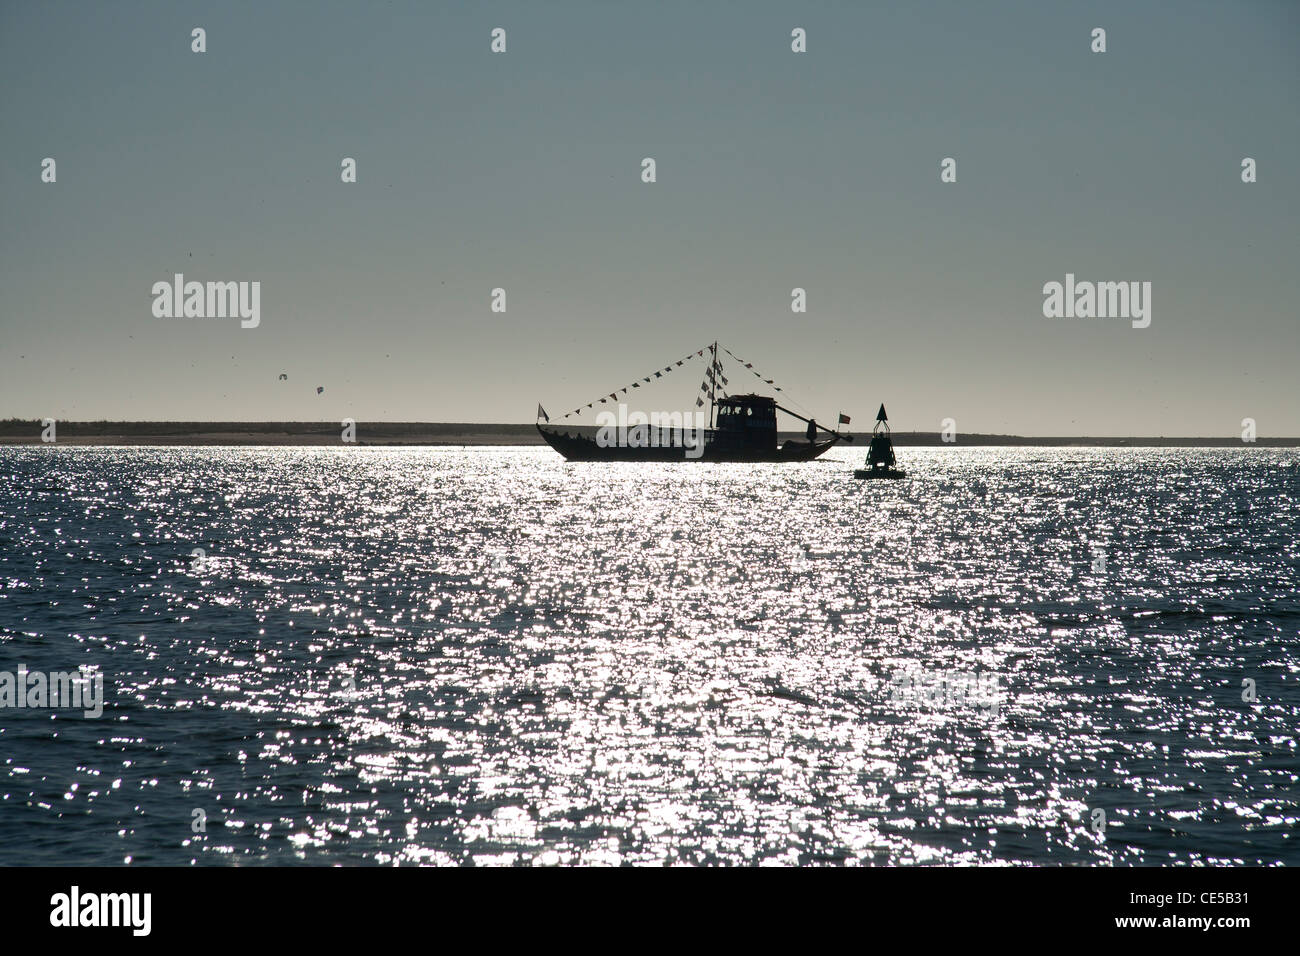 Barco Rabelo silhouette on the Douro river with sun reflection - Stock Image